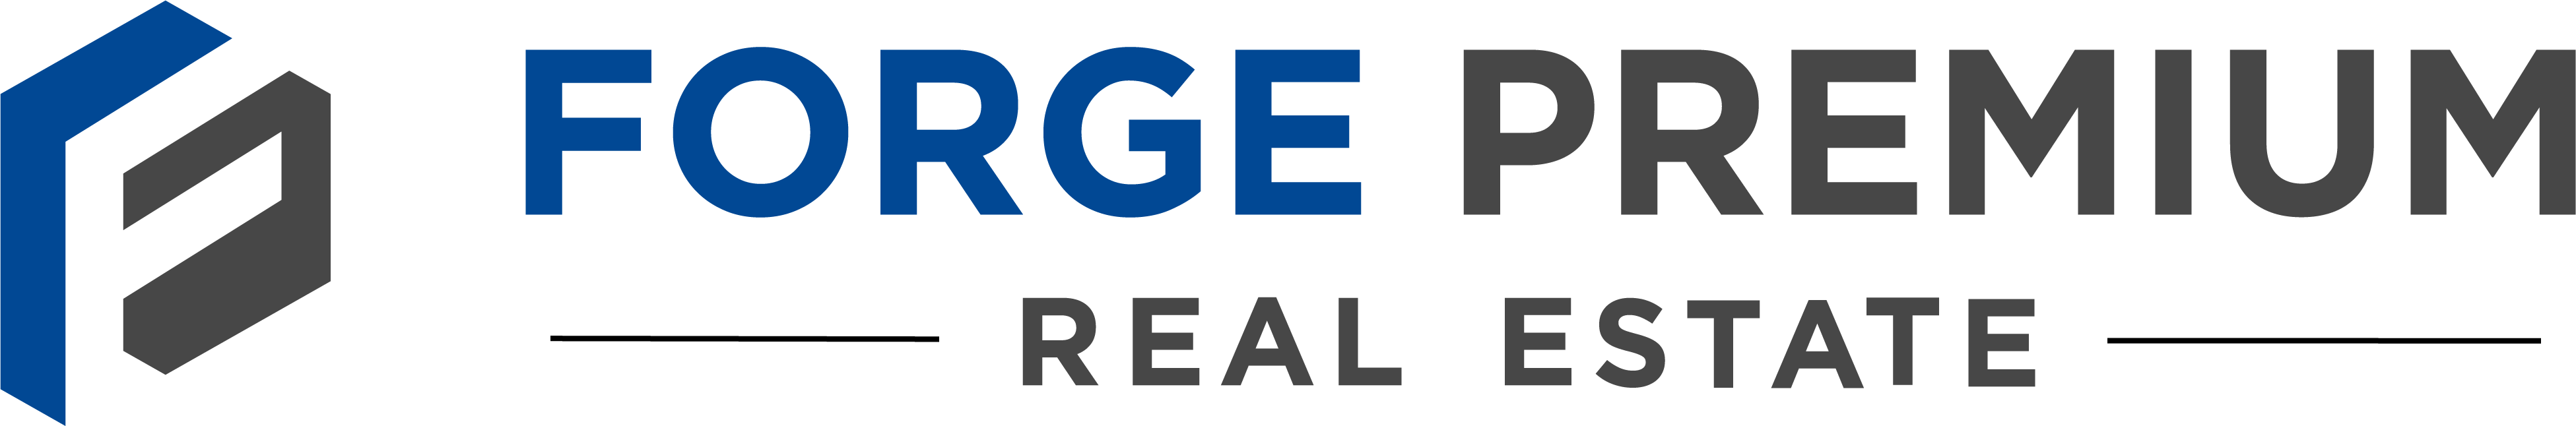 Forge Premium Real Estate Logo